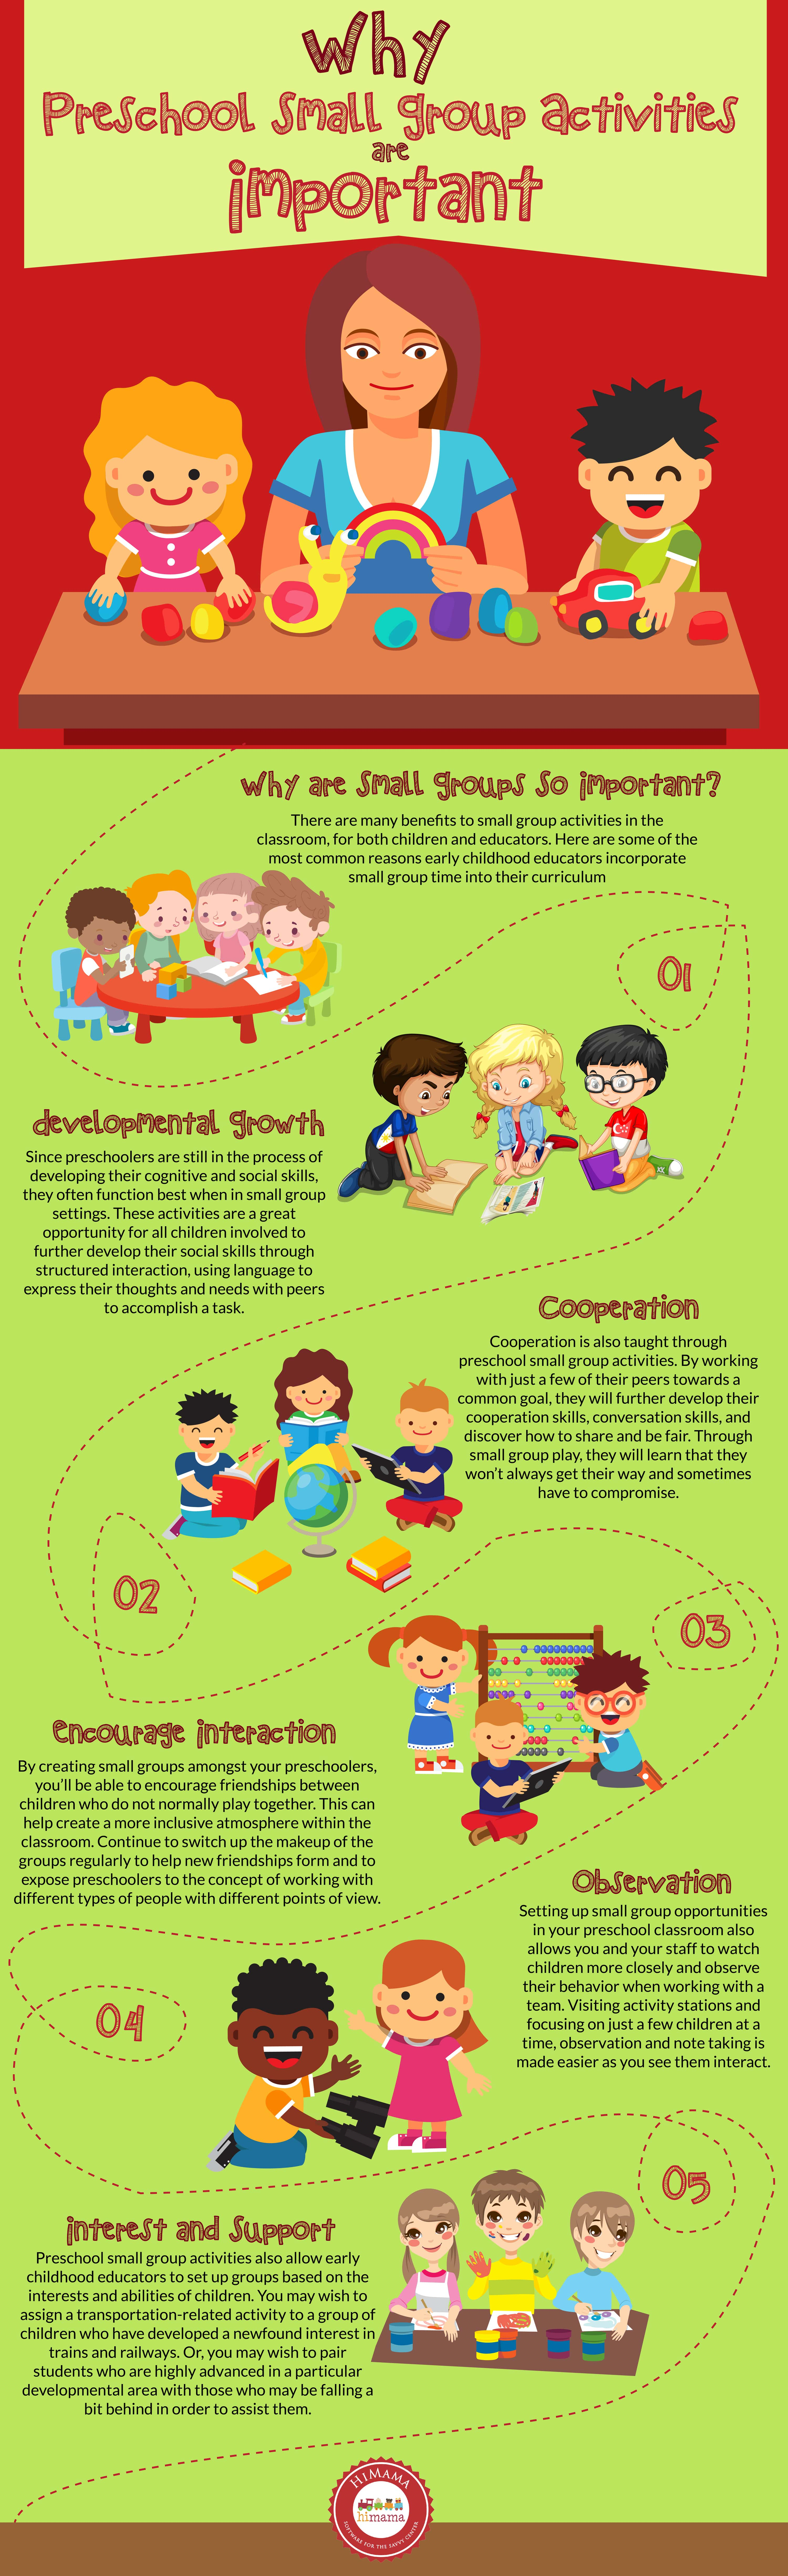 why preschool small group activities are important